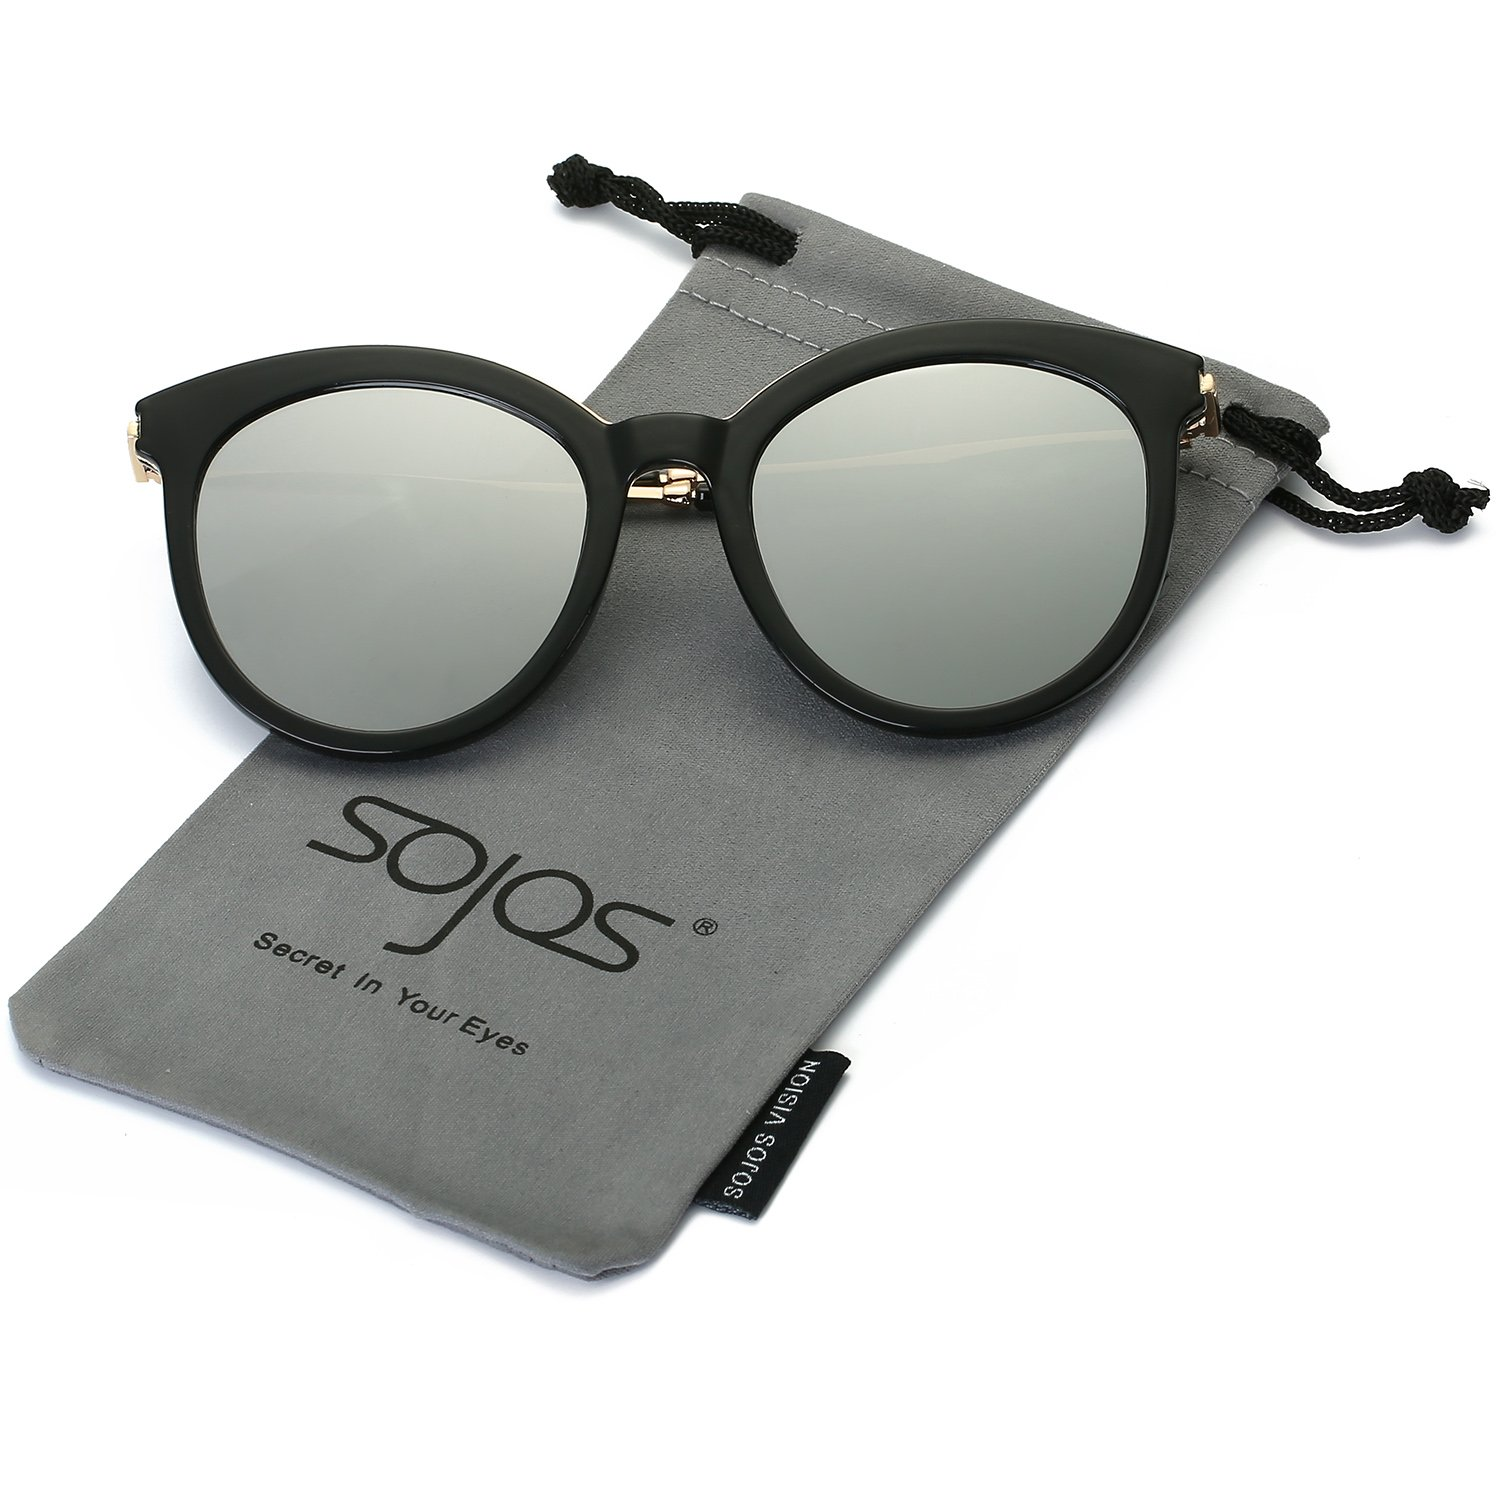 f62ad43e5701 Lens width  58 millimeters. UV400 PROTECTION – SojoS Vision lenses can  block 100% of both UVA and UVB radiation. UV400 rated sunglasses is  essential to ...